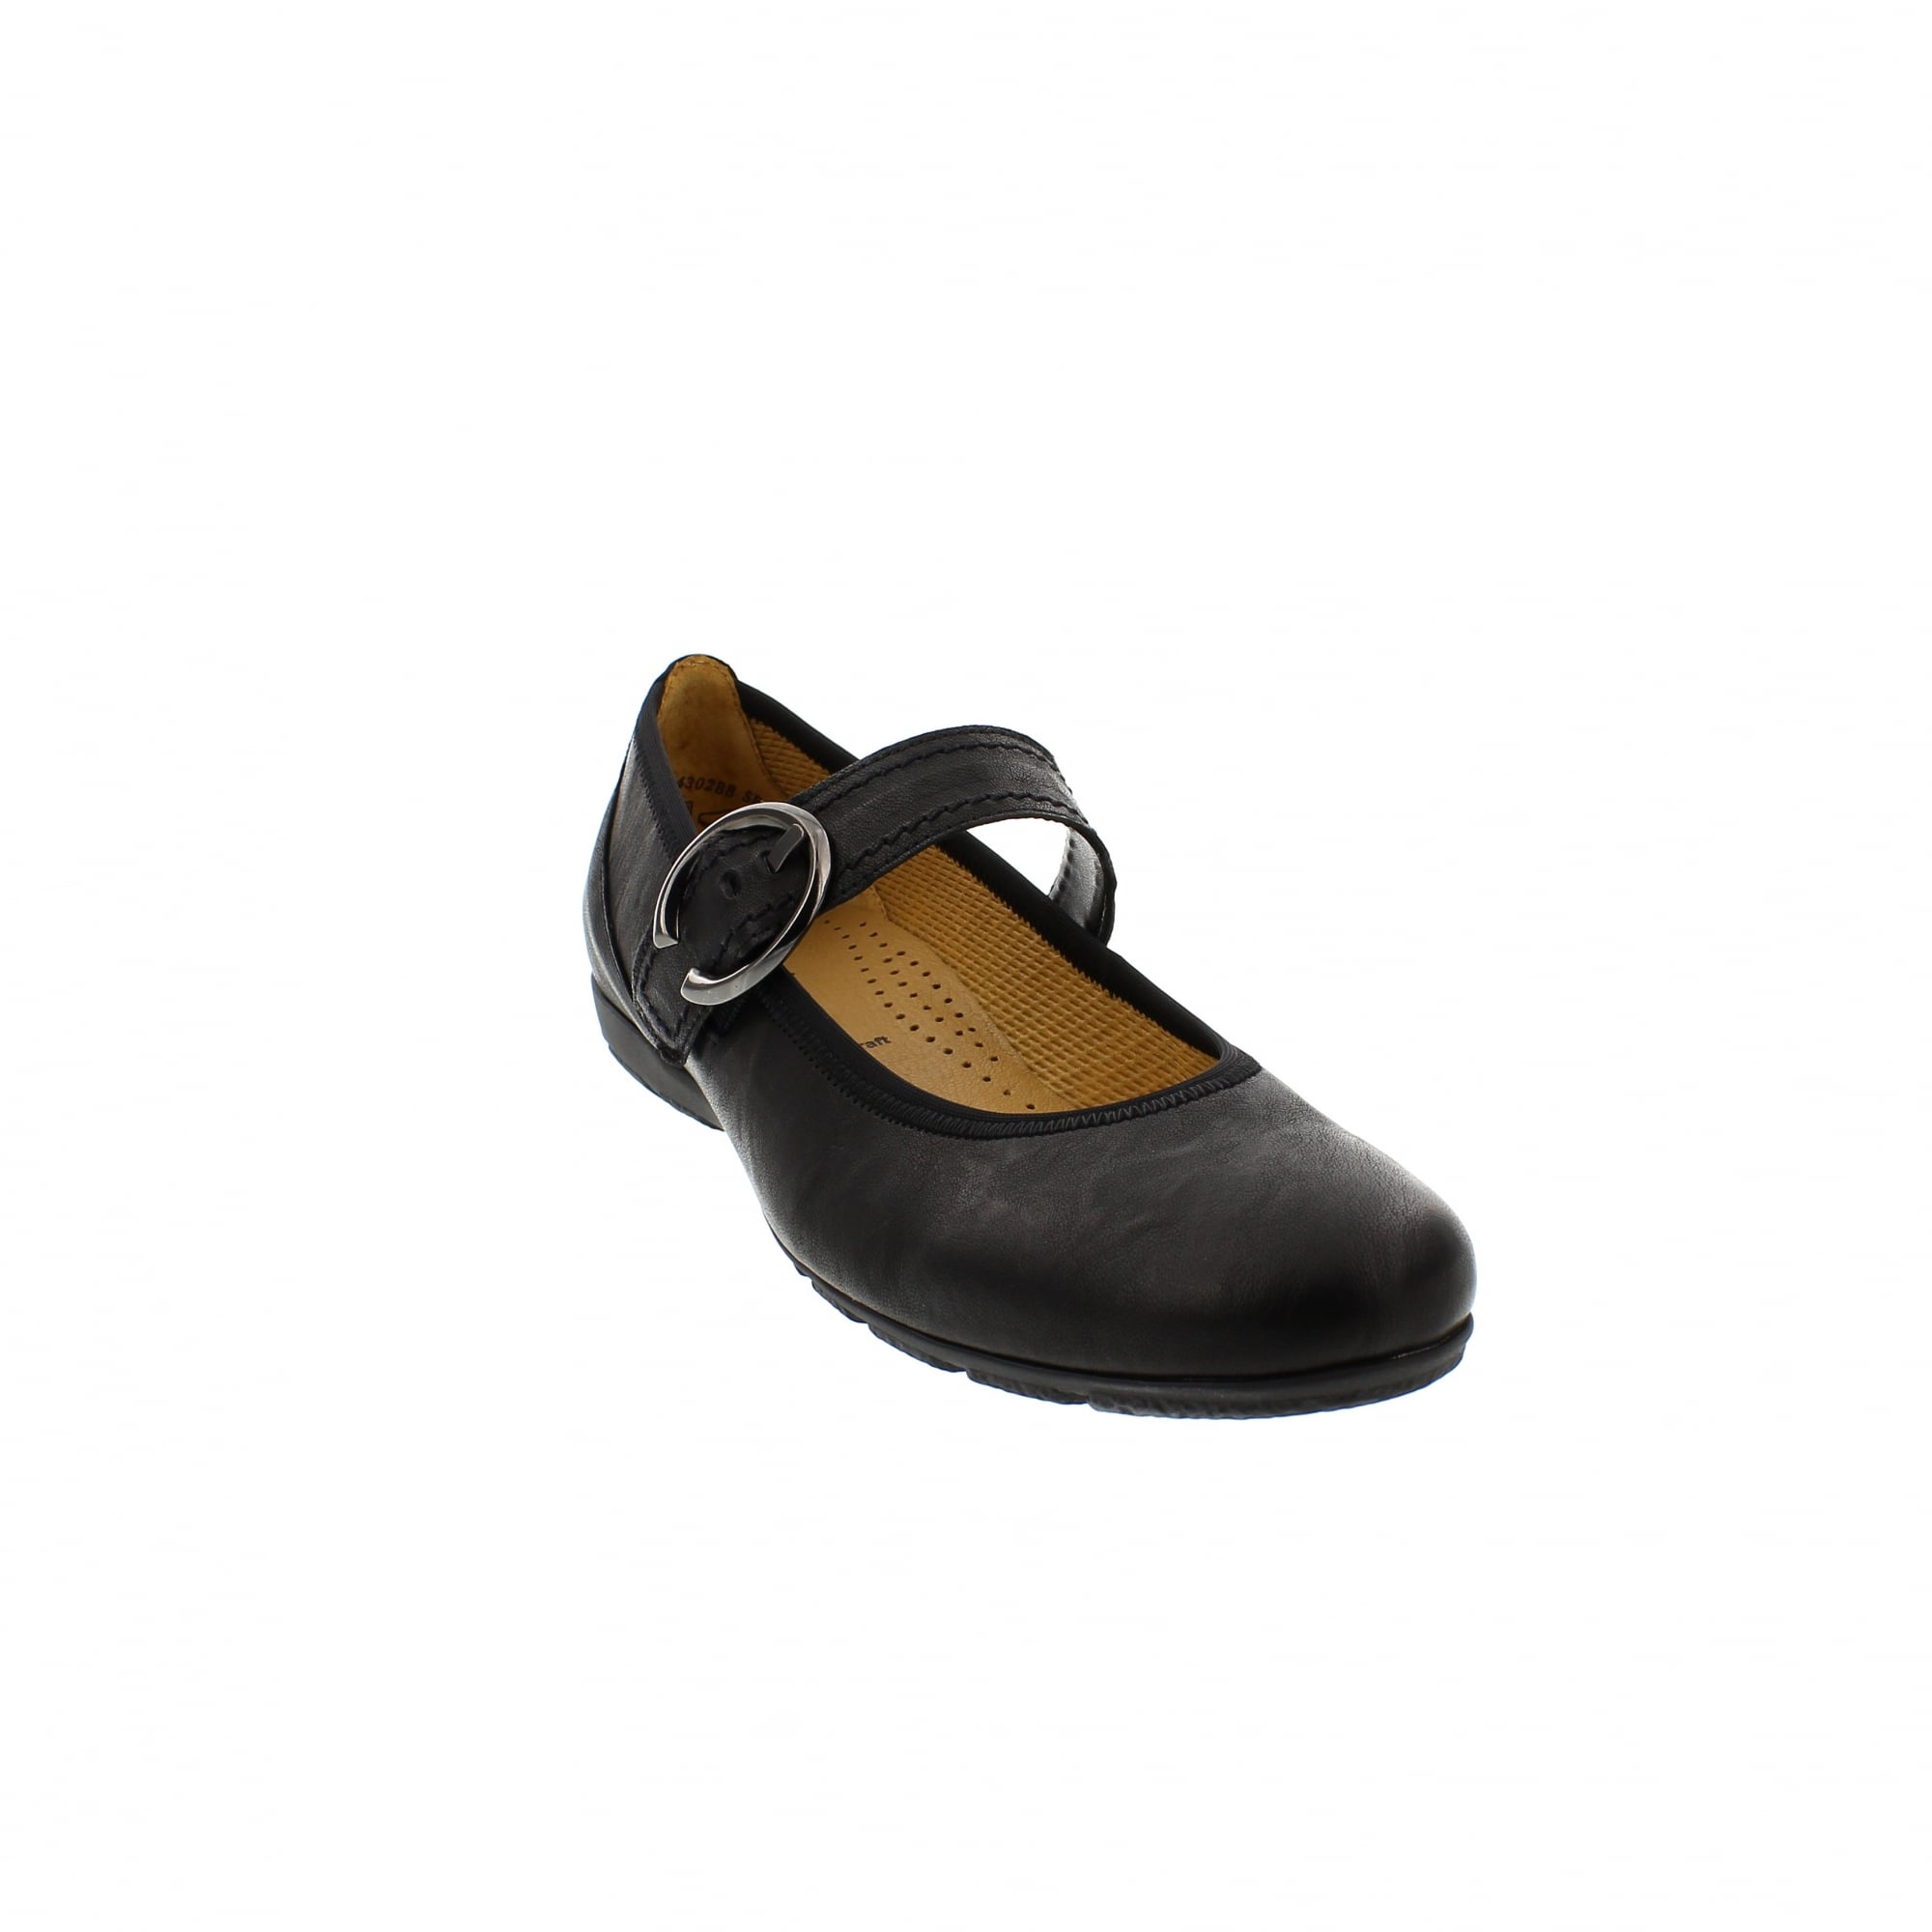 8af360e6cb Gabor Hutton 84-165-57 Black Leather Mary Jane Bar Shoes | Rogerson ...